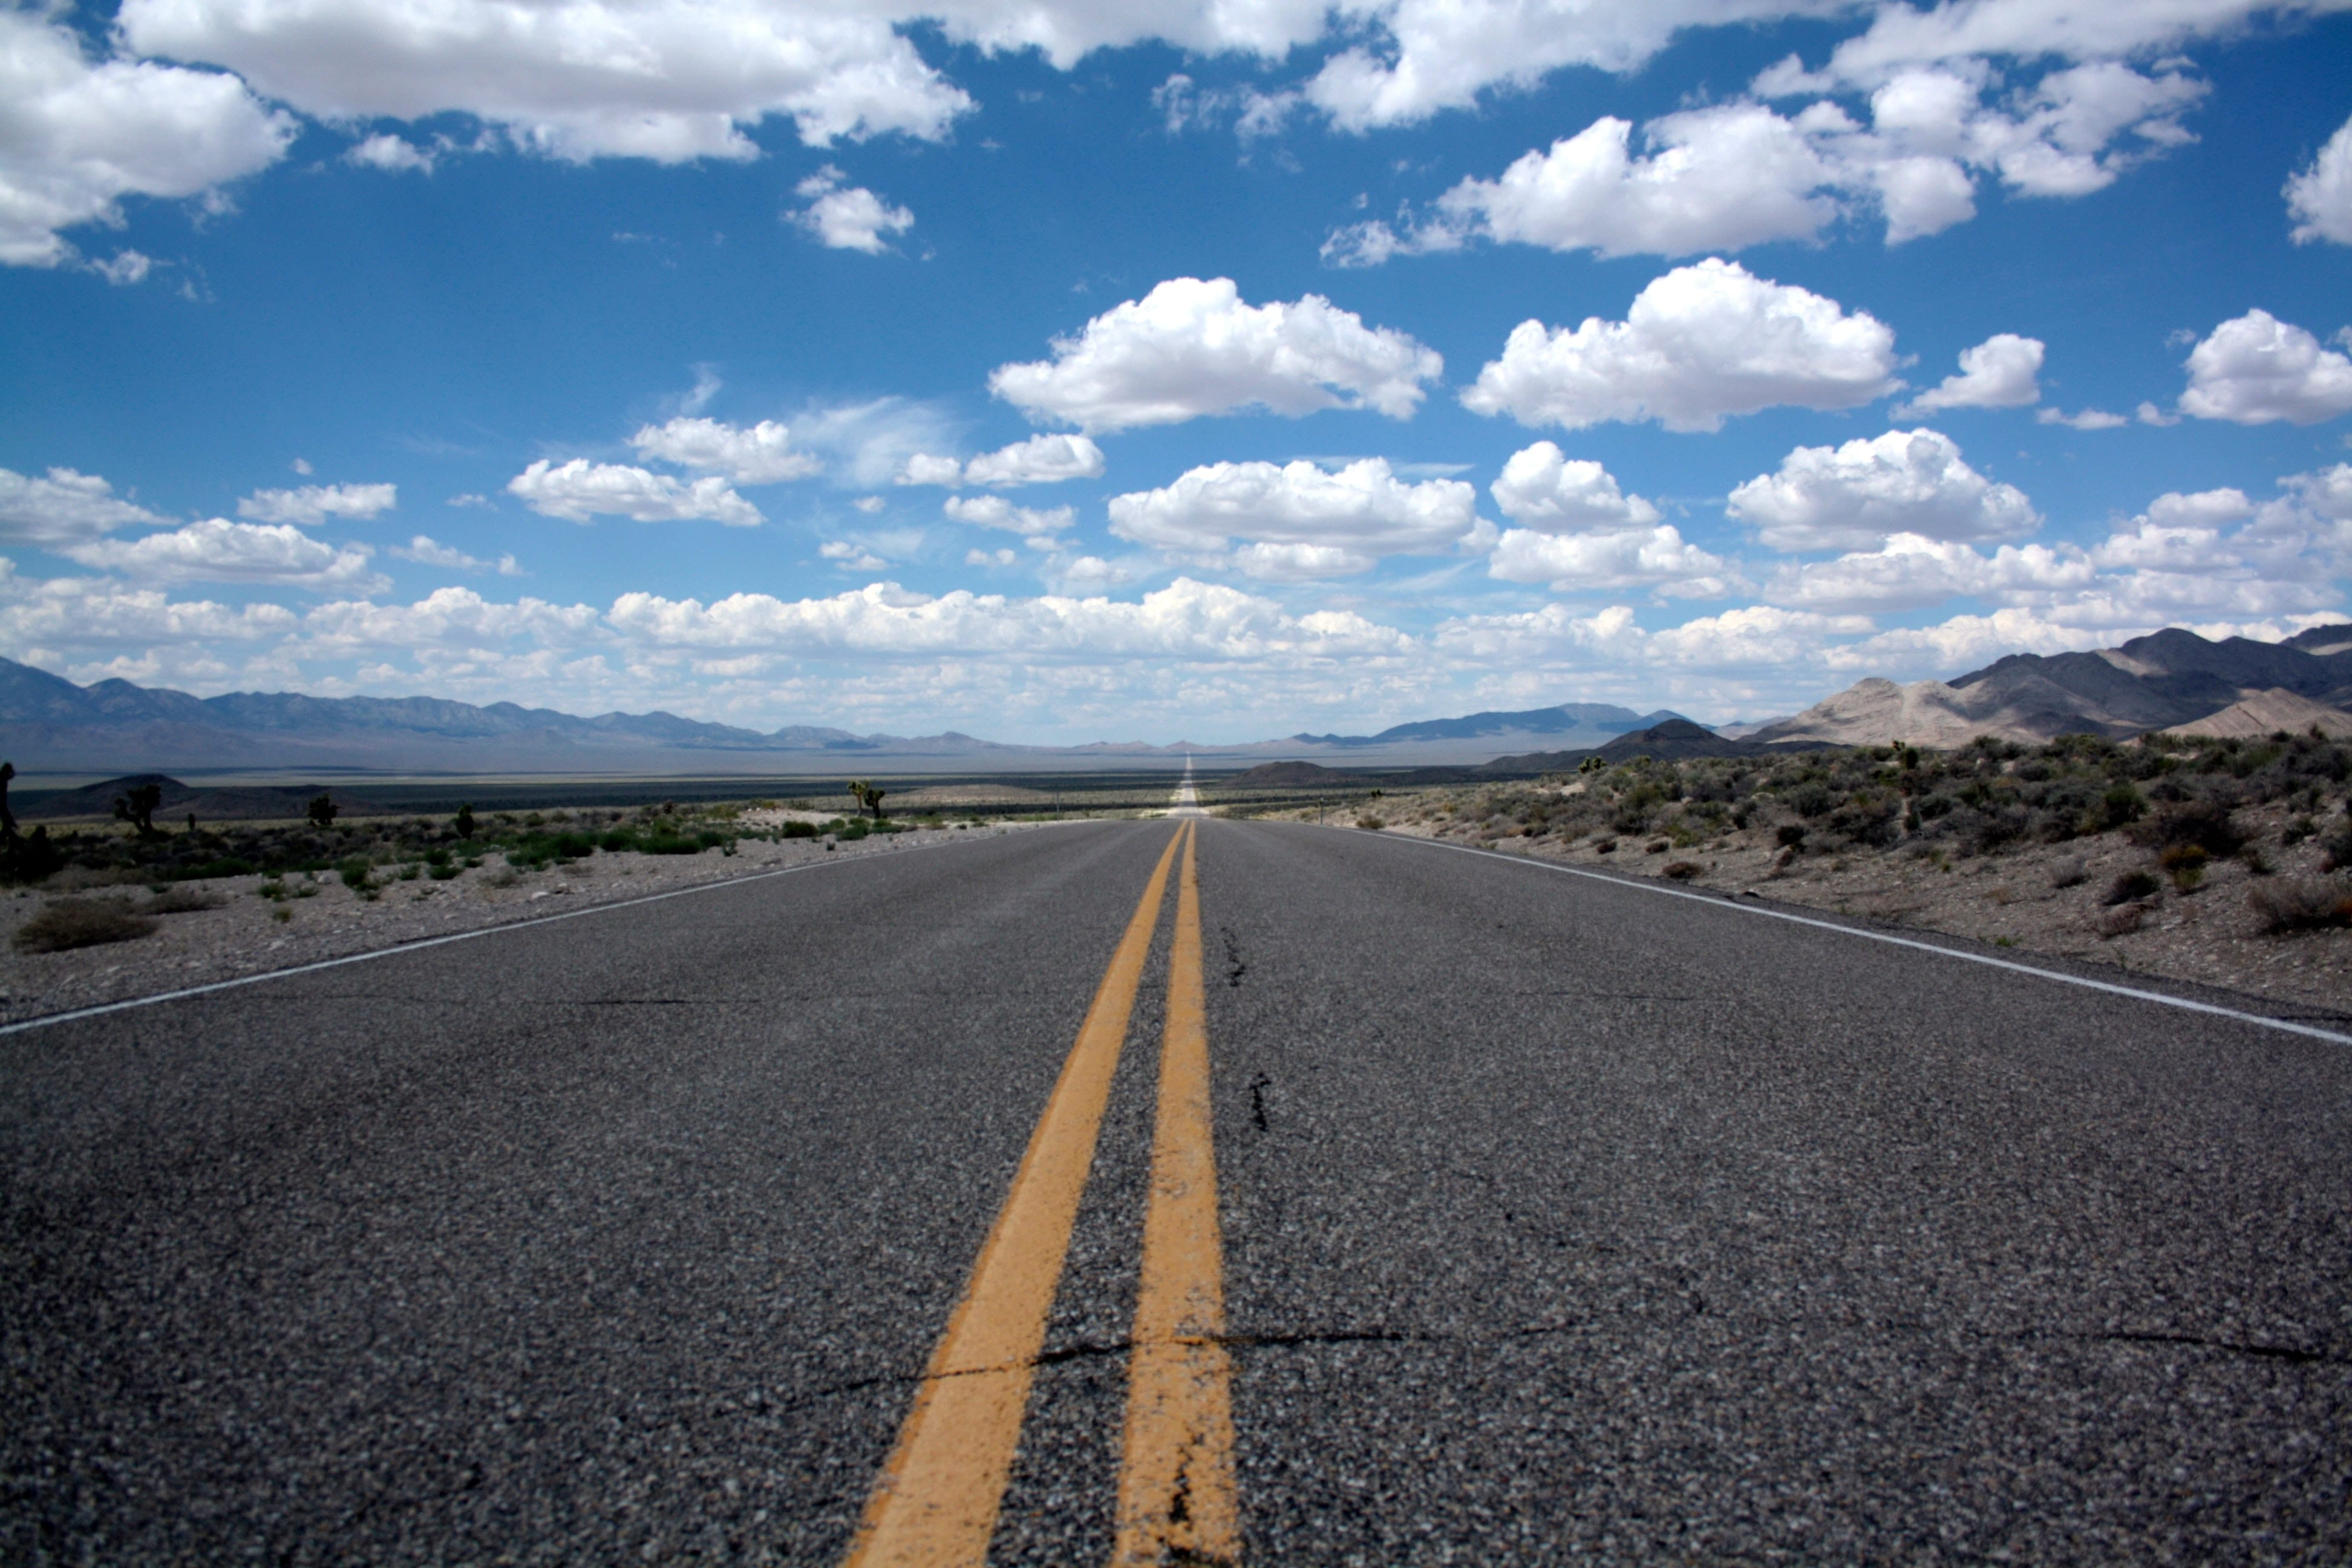 An image of an open road in America which is popular for gap year travellers